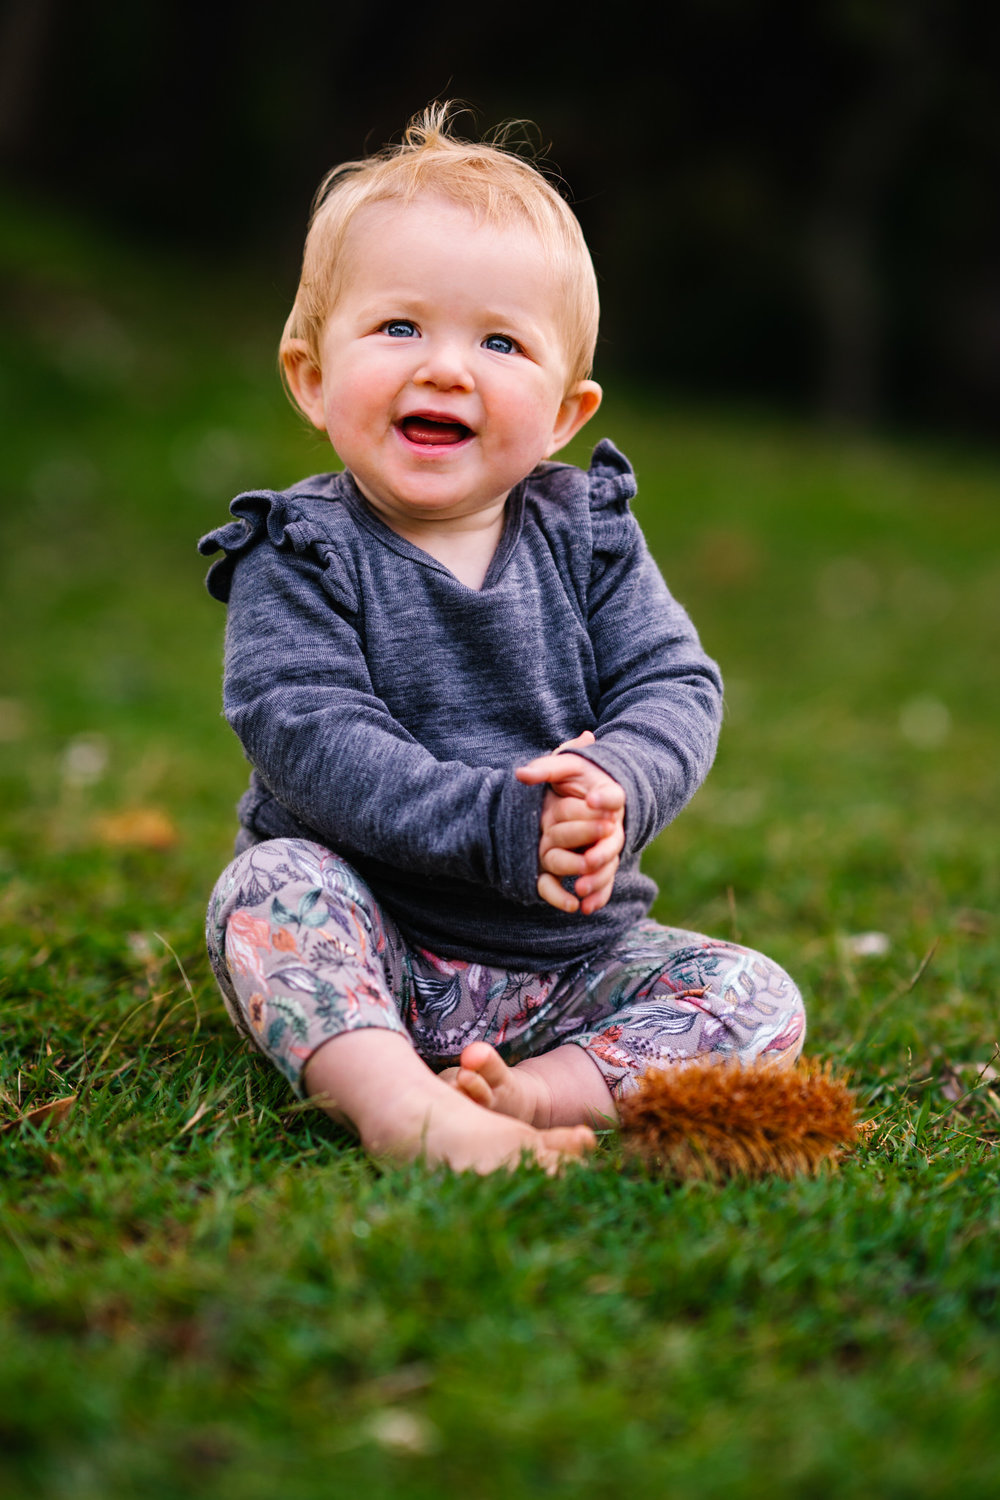 Baby girl smiling at the camera in a park